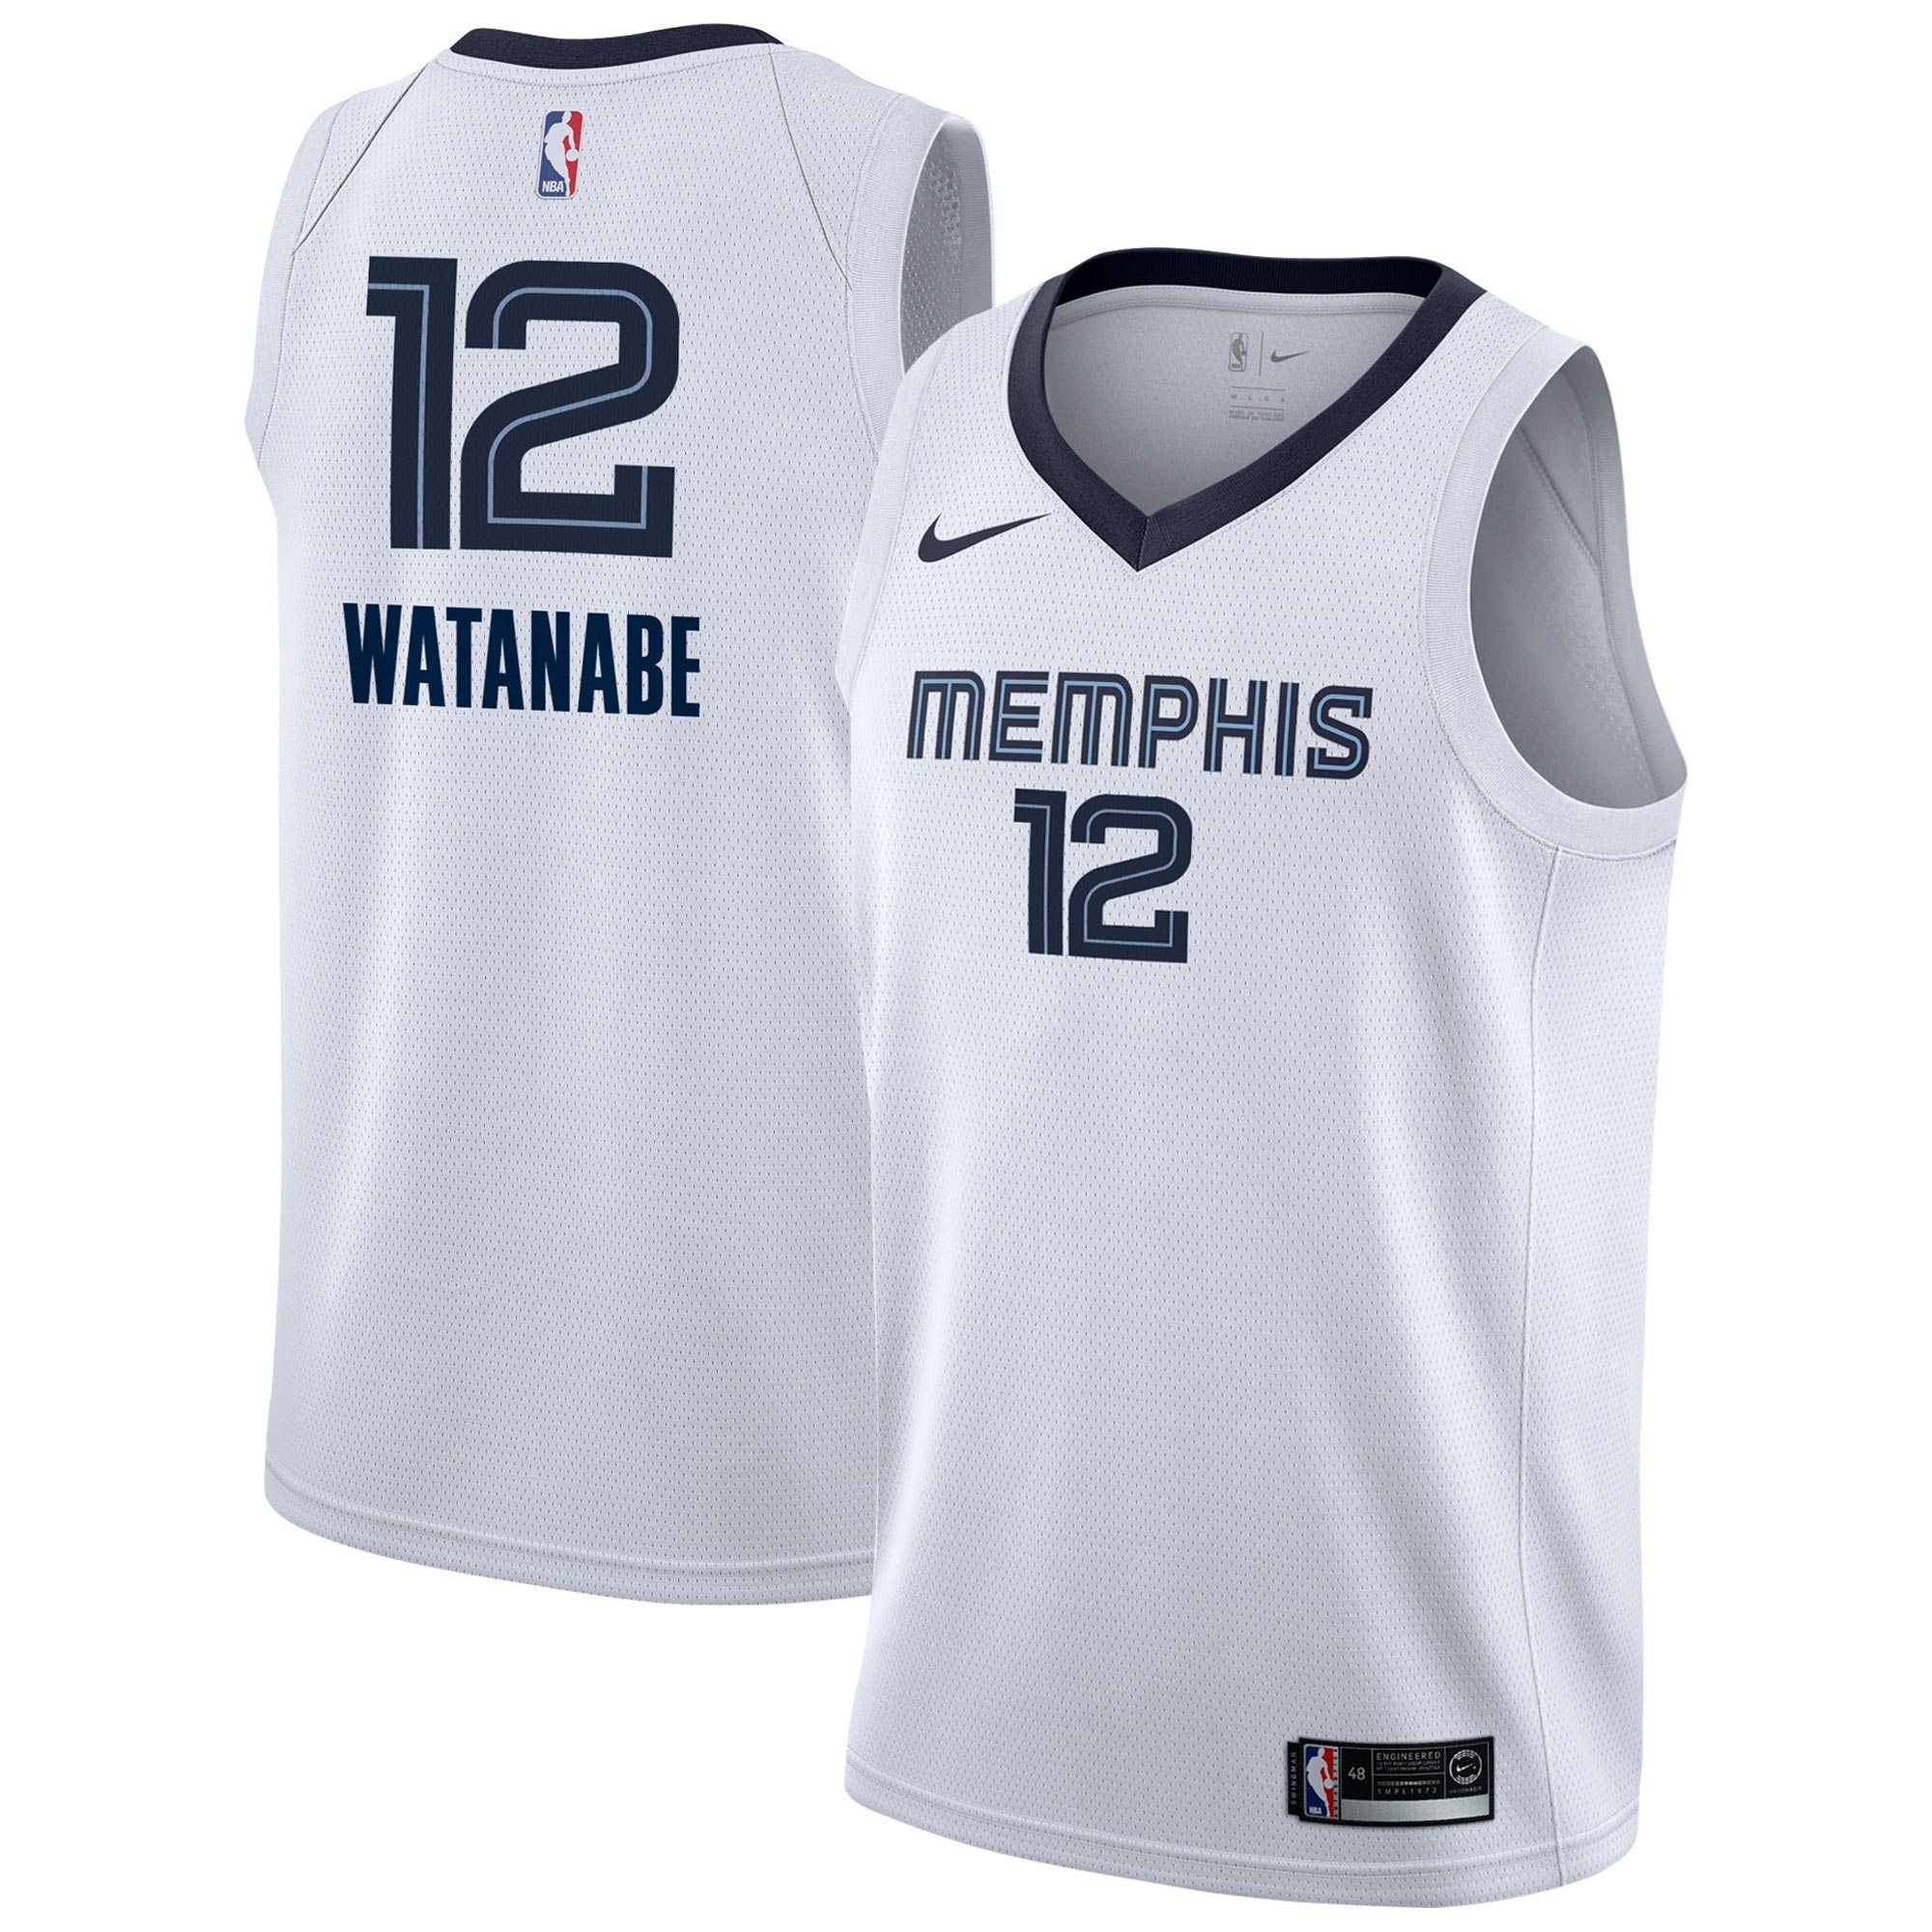 Yuta Watanabe Grizzlies Jersey NBA Store Association Swingman